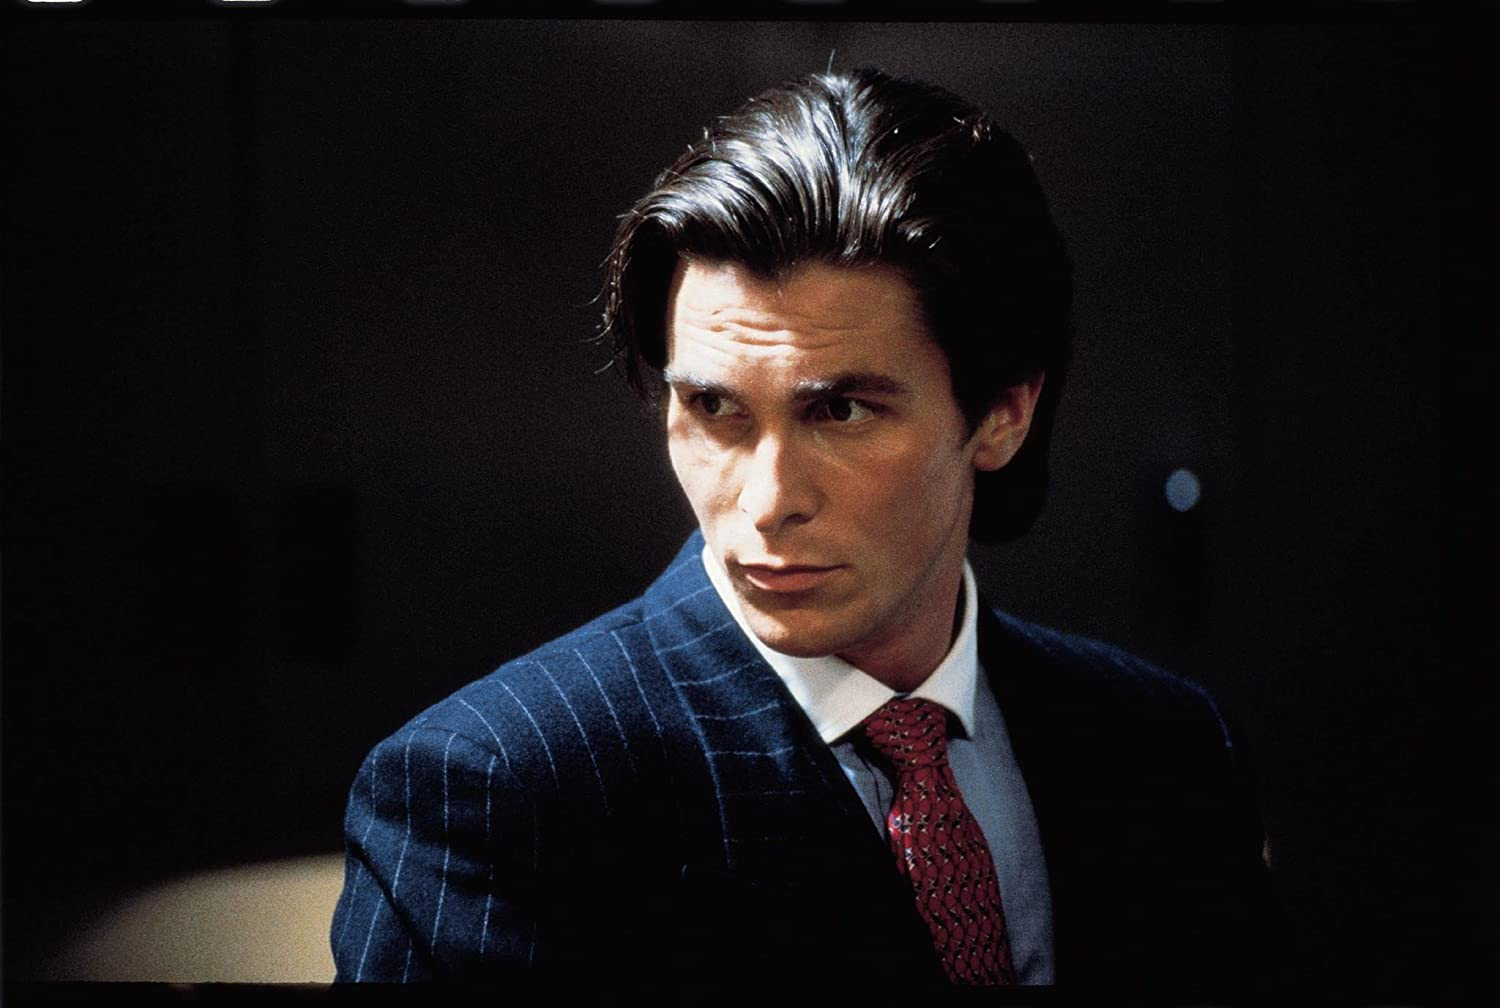 Amazing christian bale business card embellishment business card american psycho business cards video images card design and card reheart Gallery